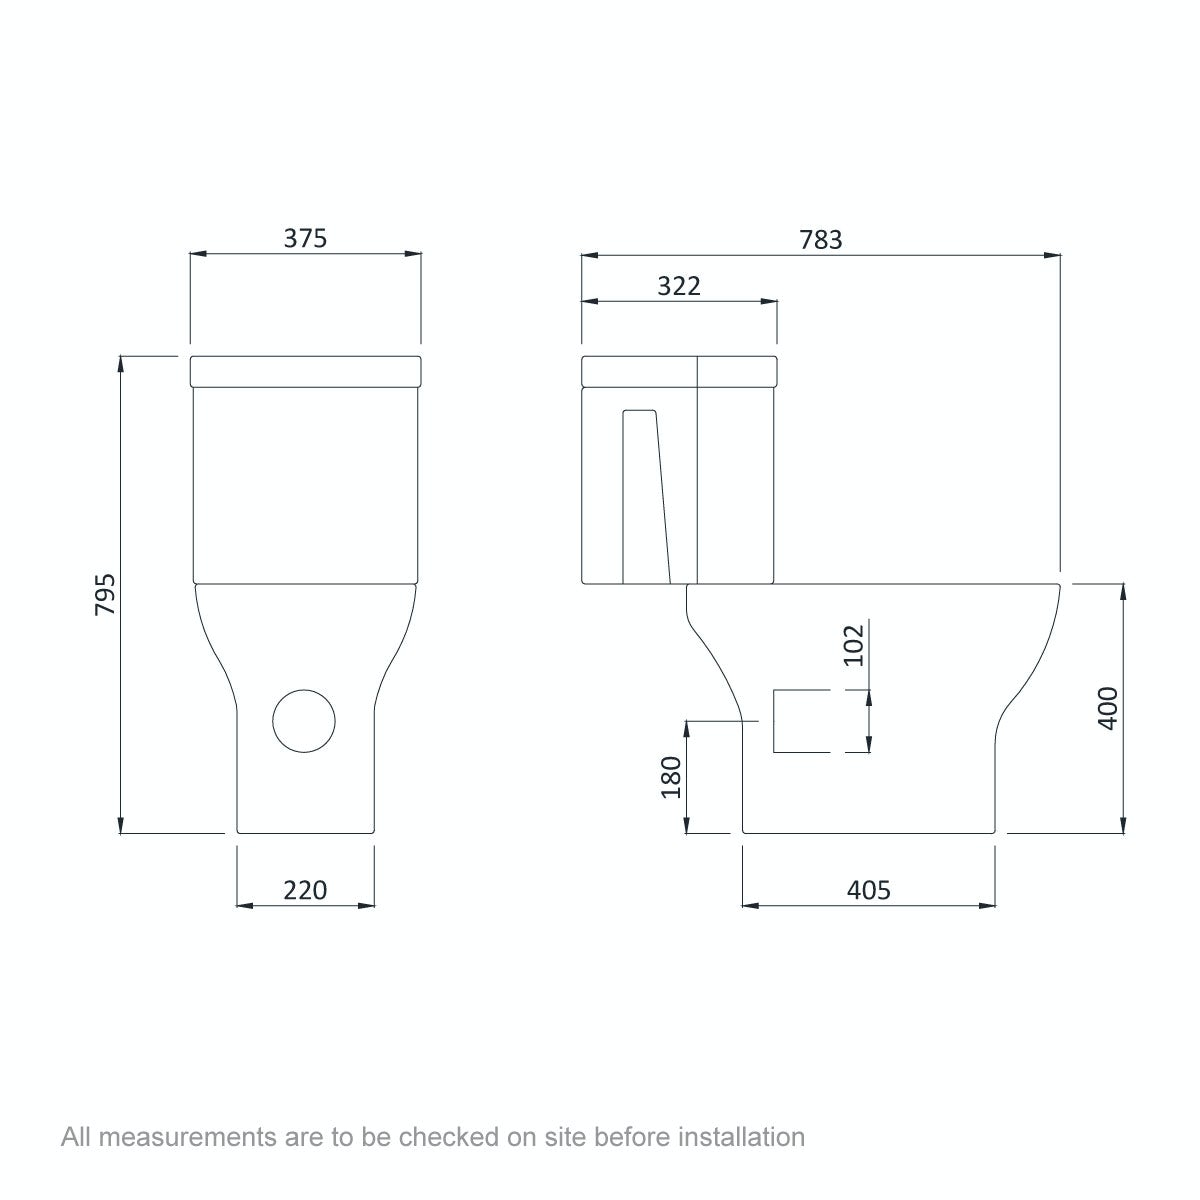 Dimensions for Orchard Derwent square compact corner close coupled toilet with slimline soft close toilet seat